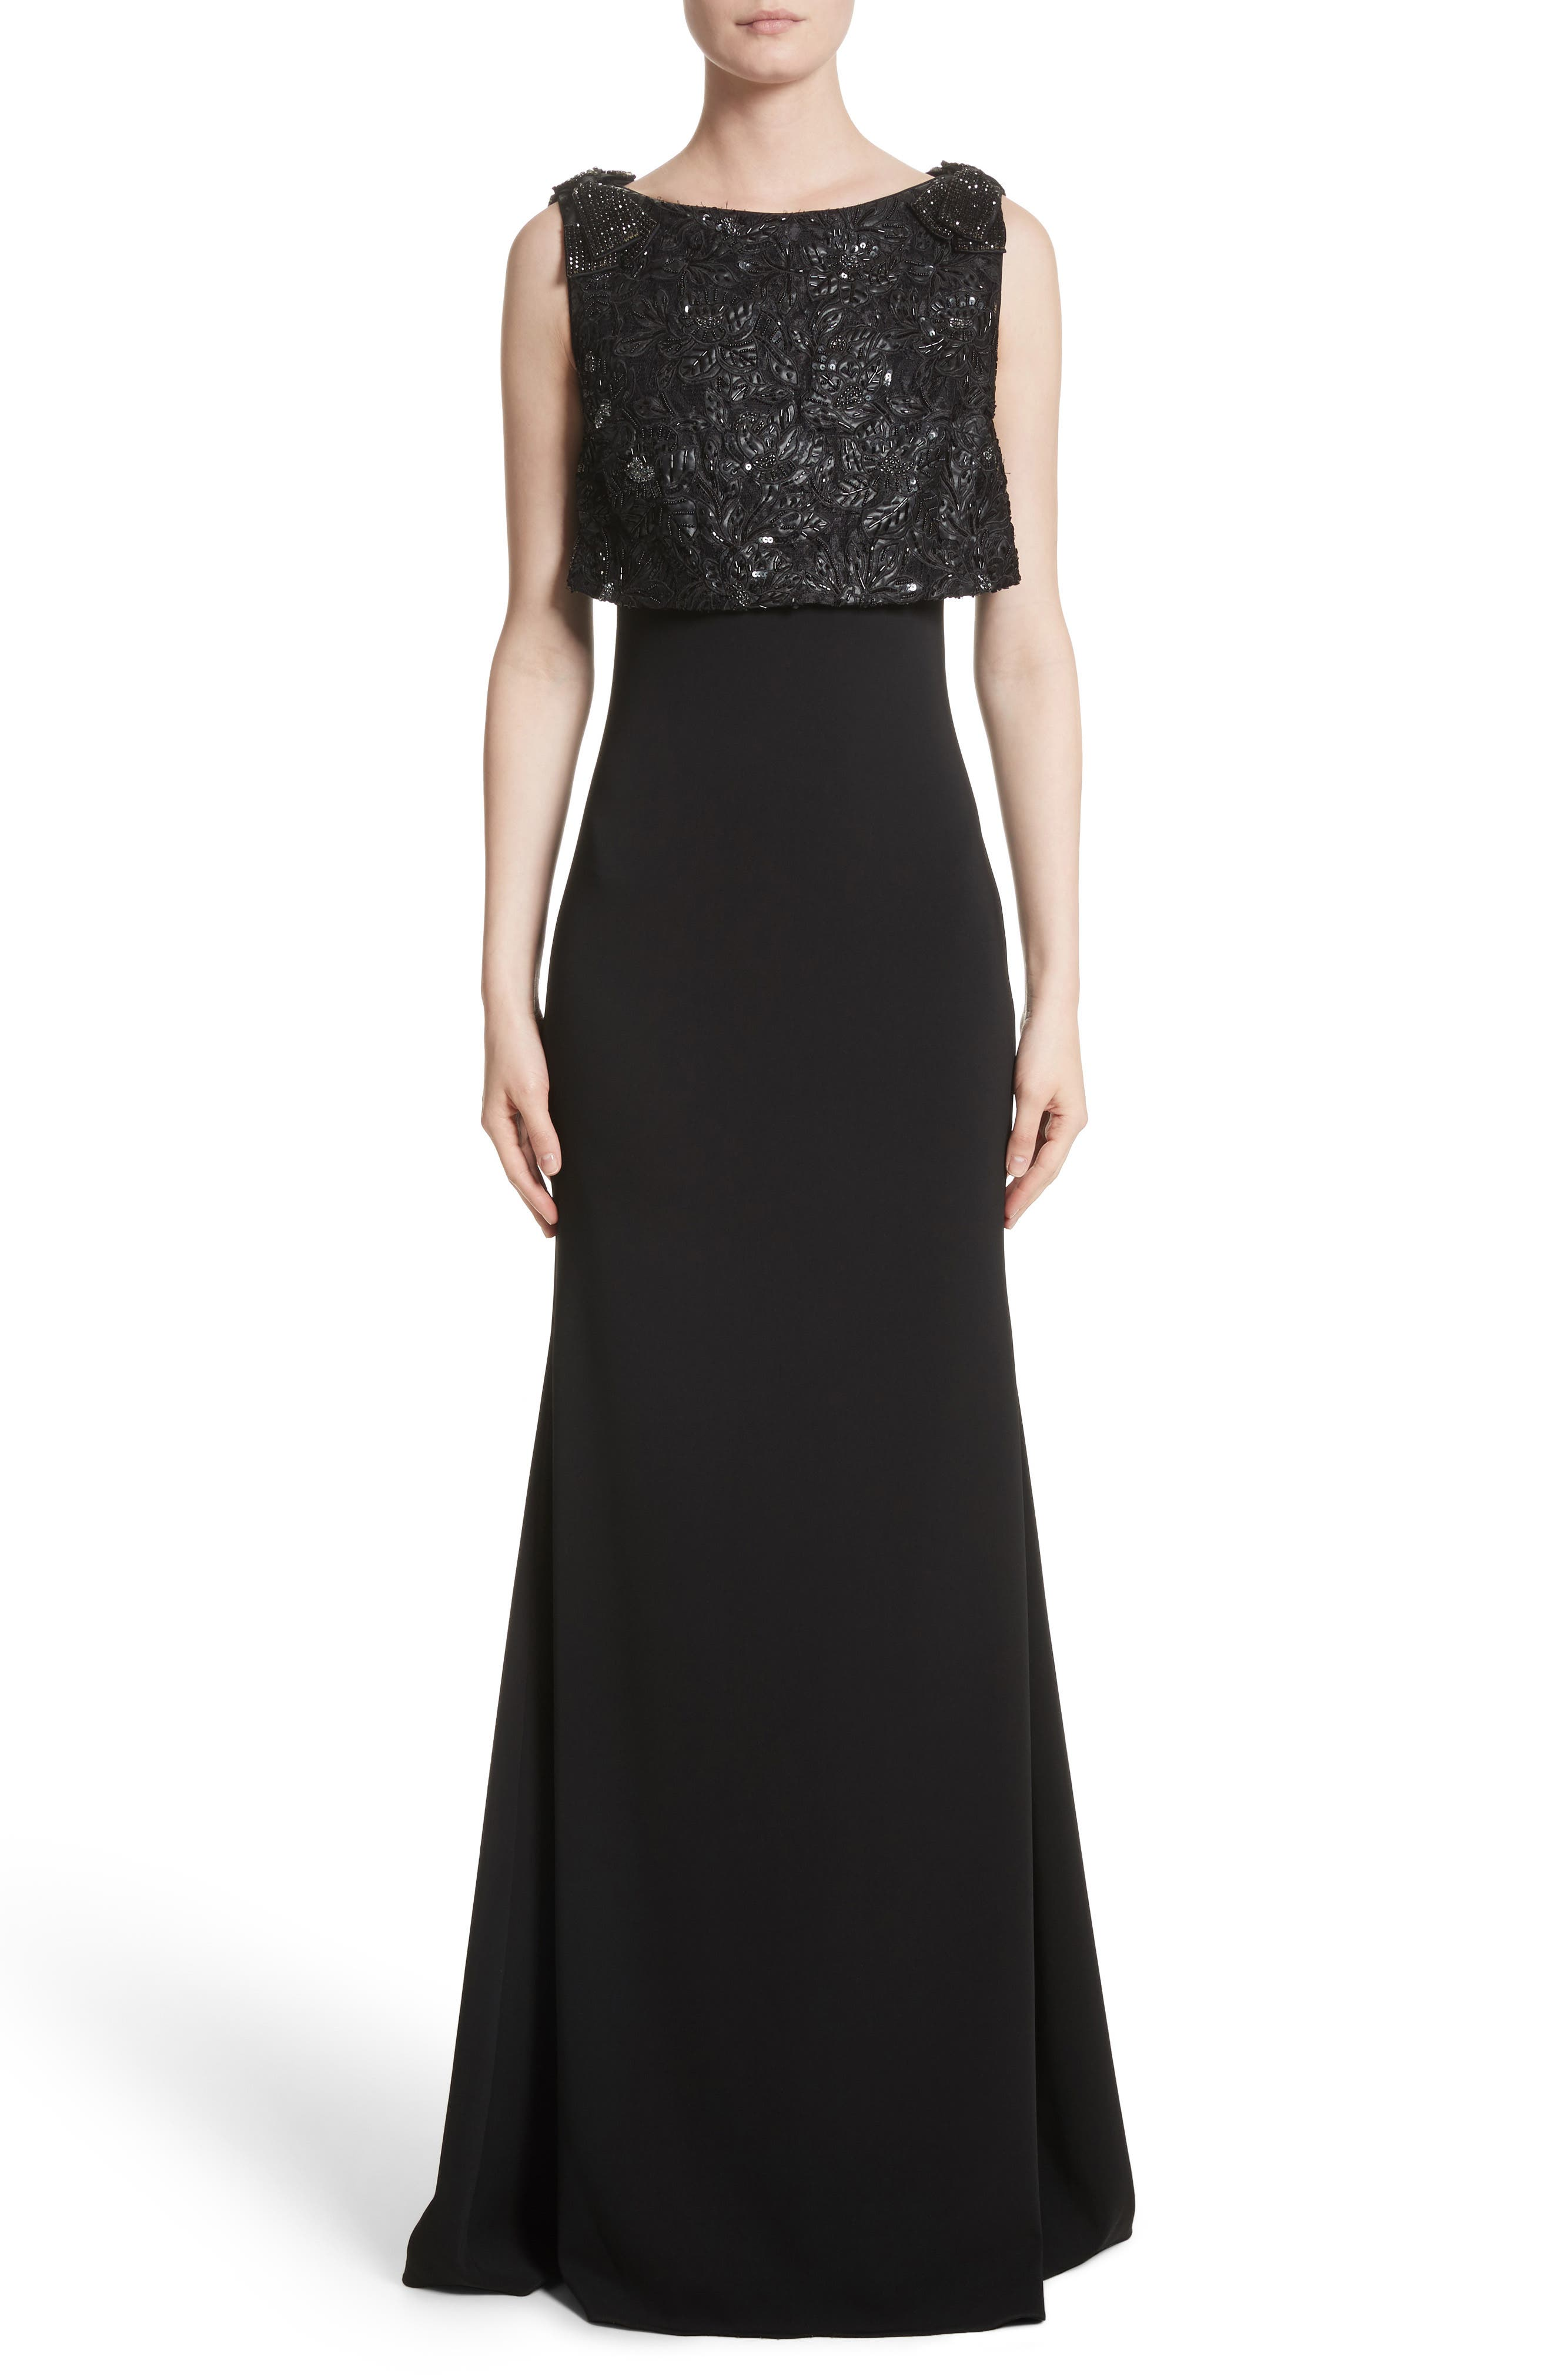 Alternate Image 1 Selected - Badgley Mischka Couture Embellished Popover Gown